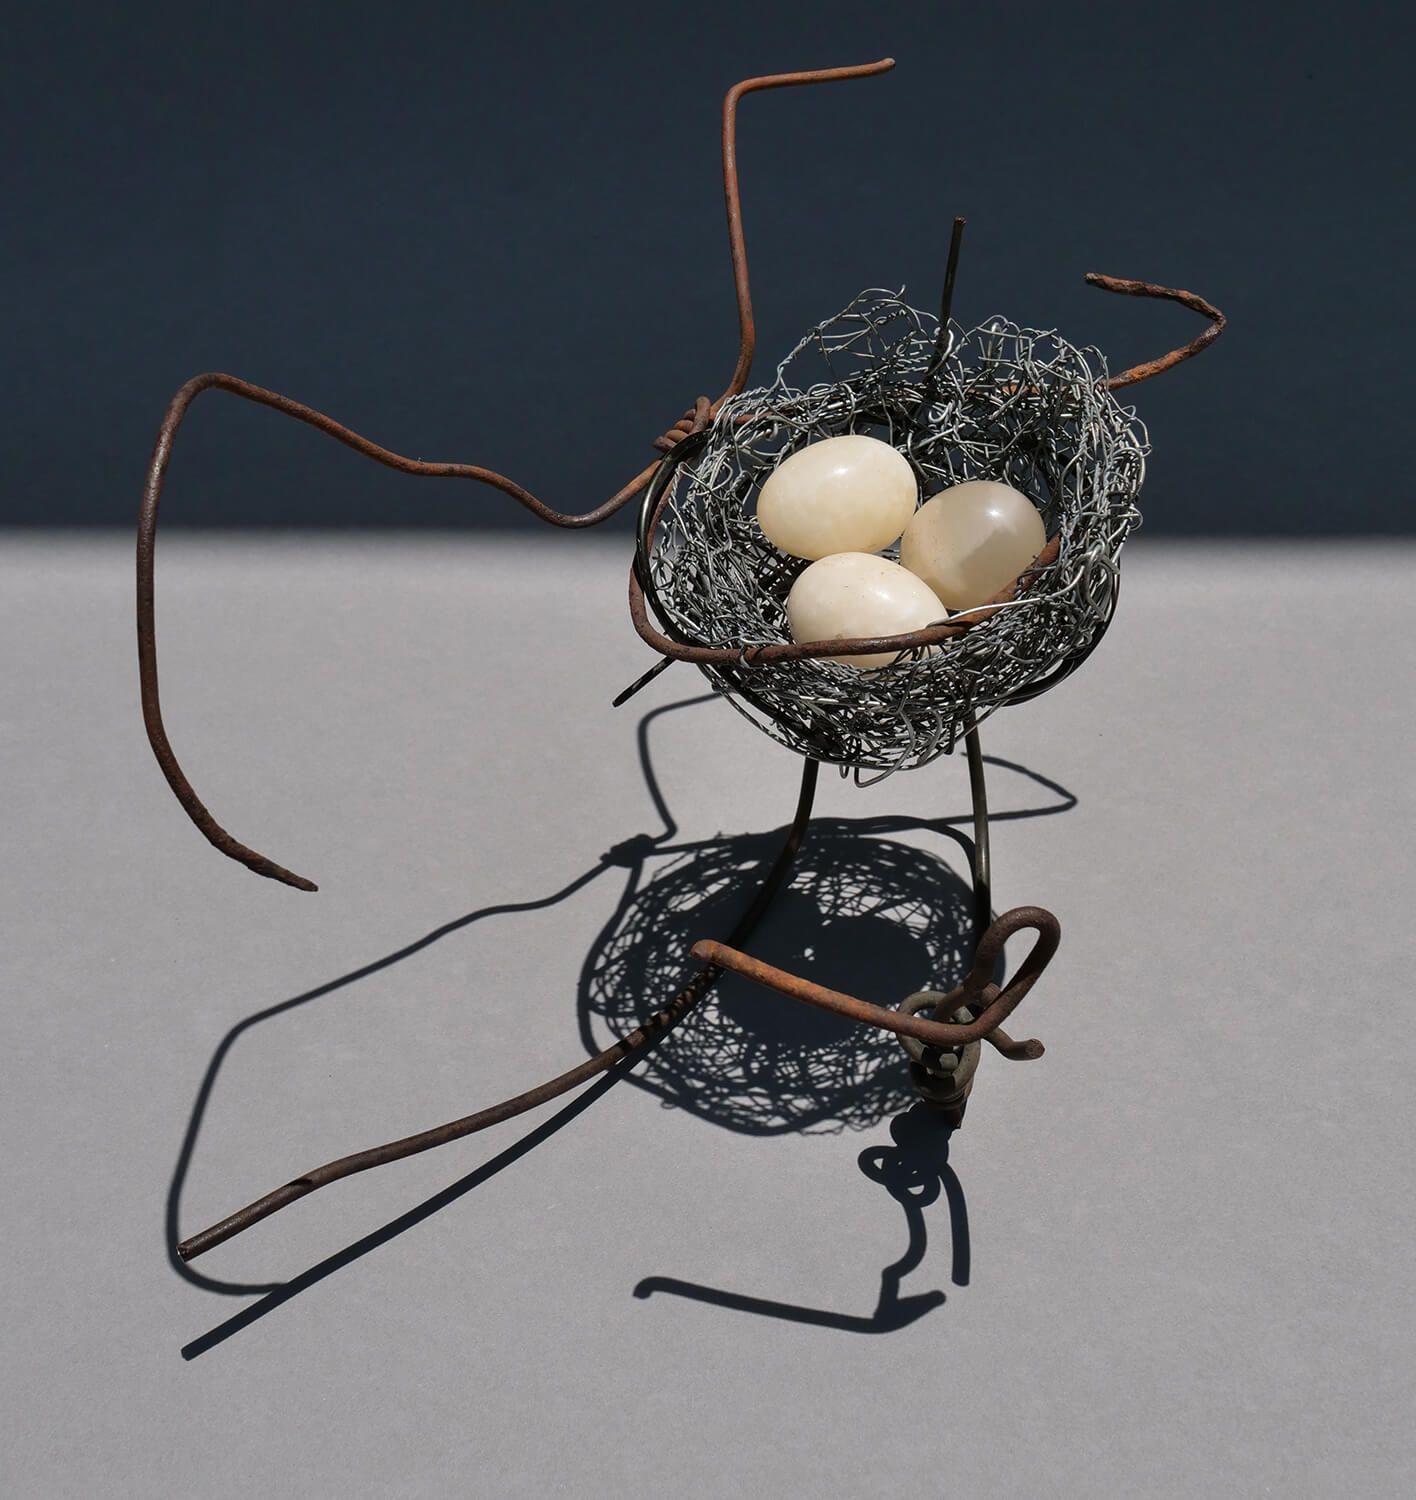 Nest 2. Handmade wire nest approximately 25 cm wide and 17 cm high with polished stone eggs 3 cm.